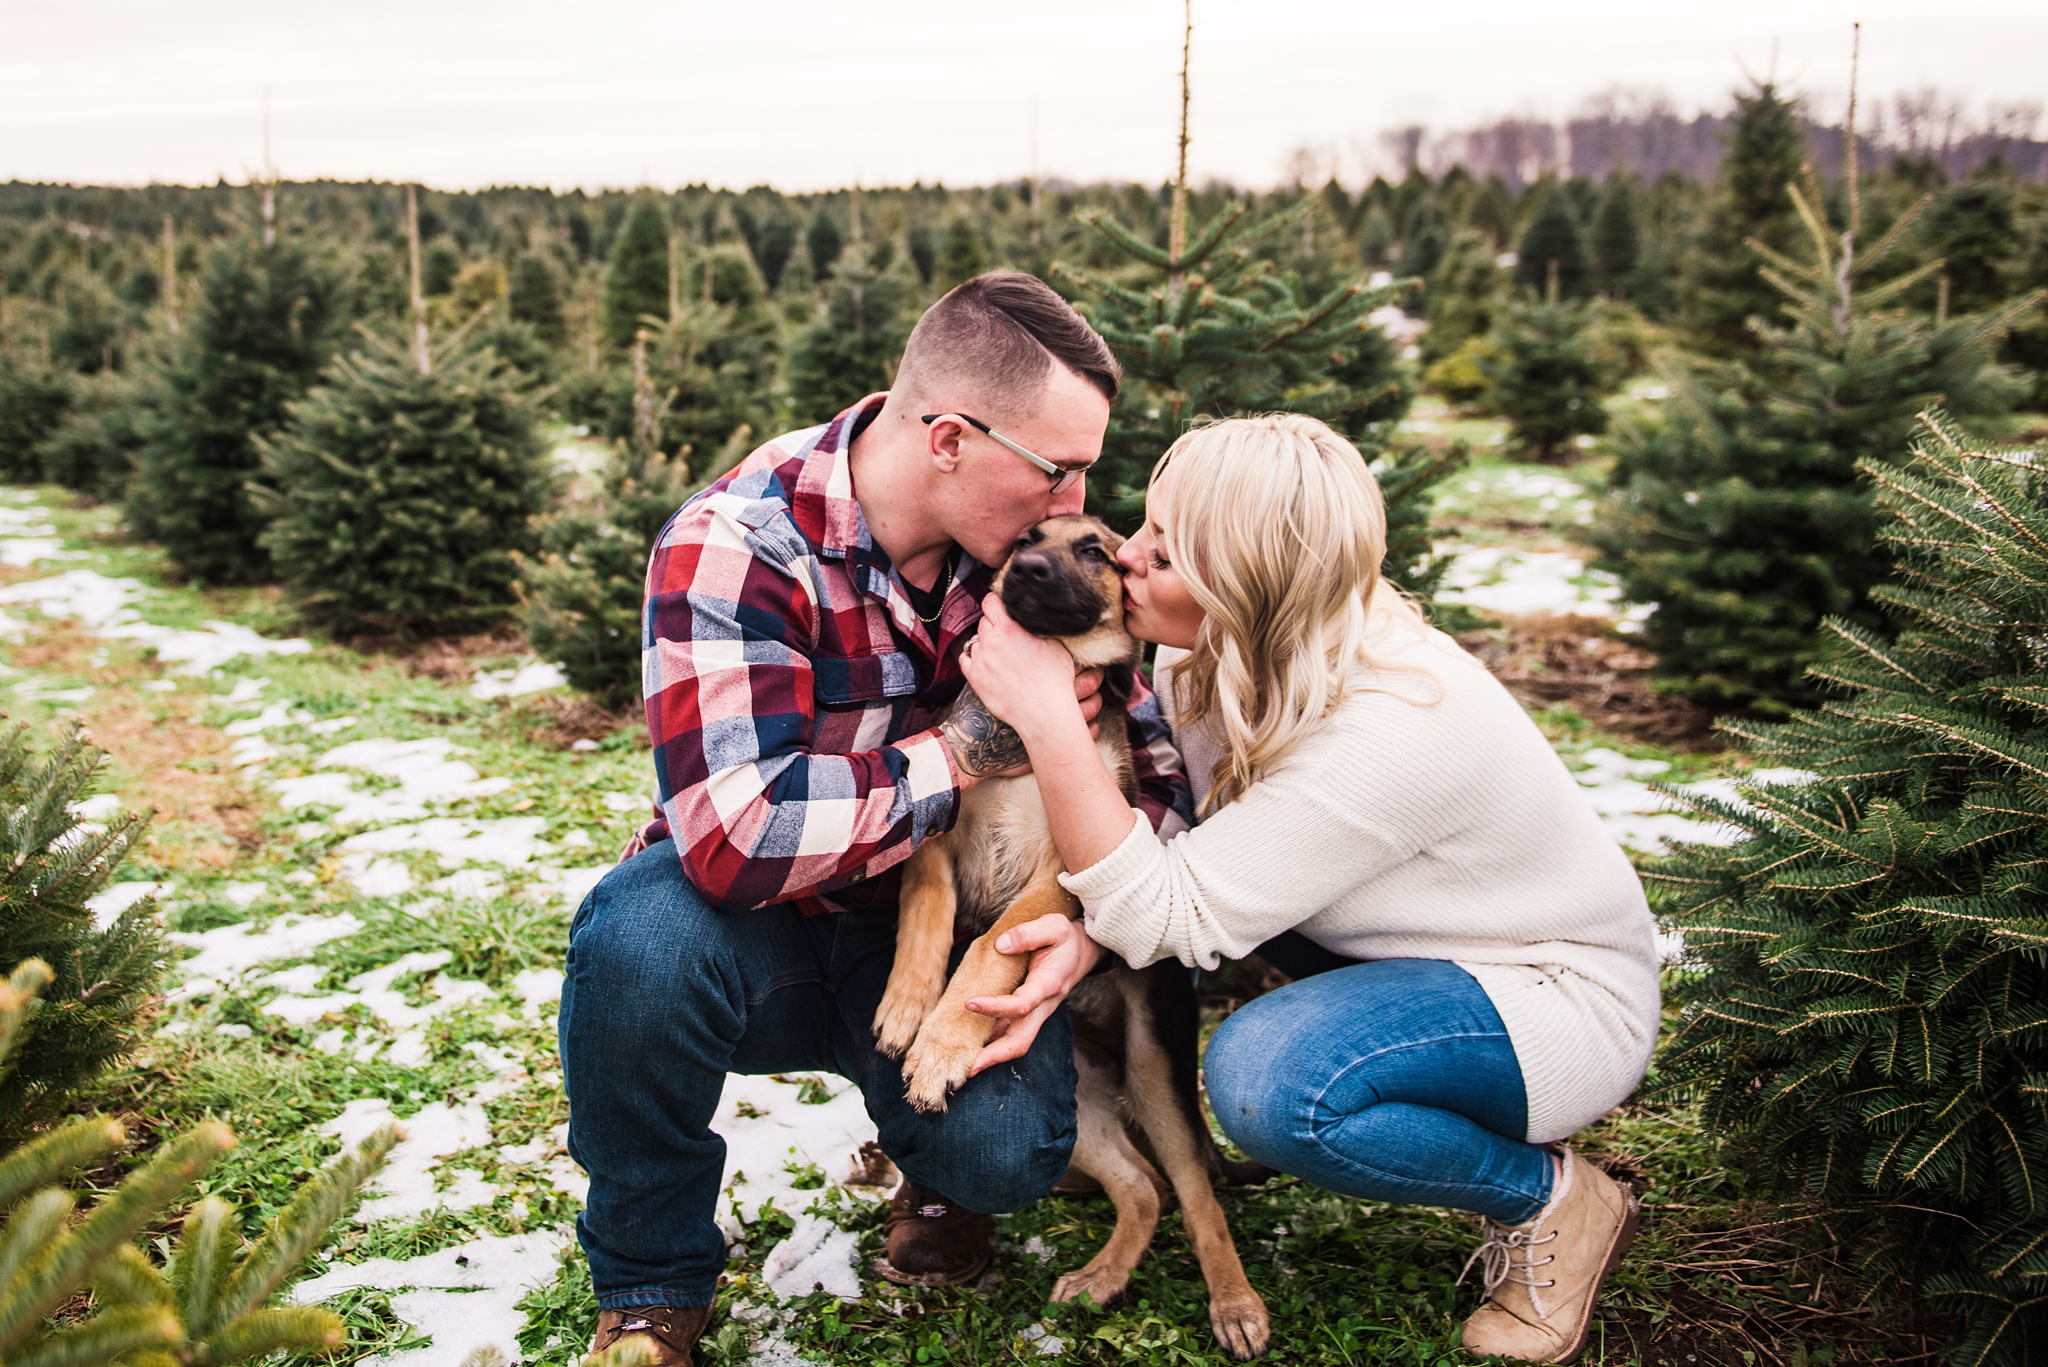 Woody_Acres_Rochester_Family_Session_JILL_STUDIO_Rochester_NY_Photographer_DSC_2530.jpg